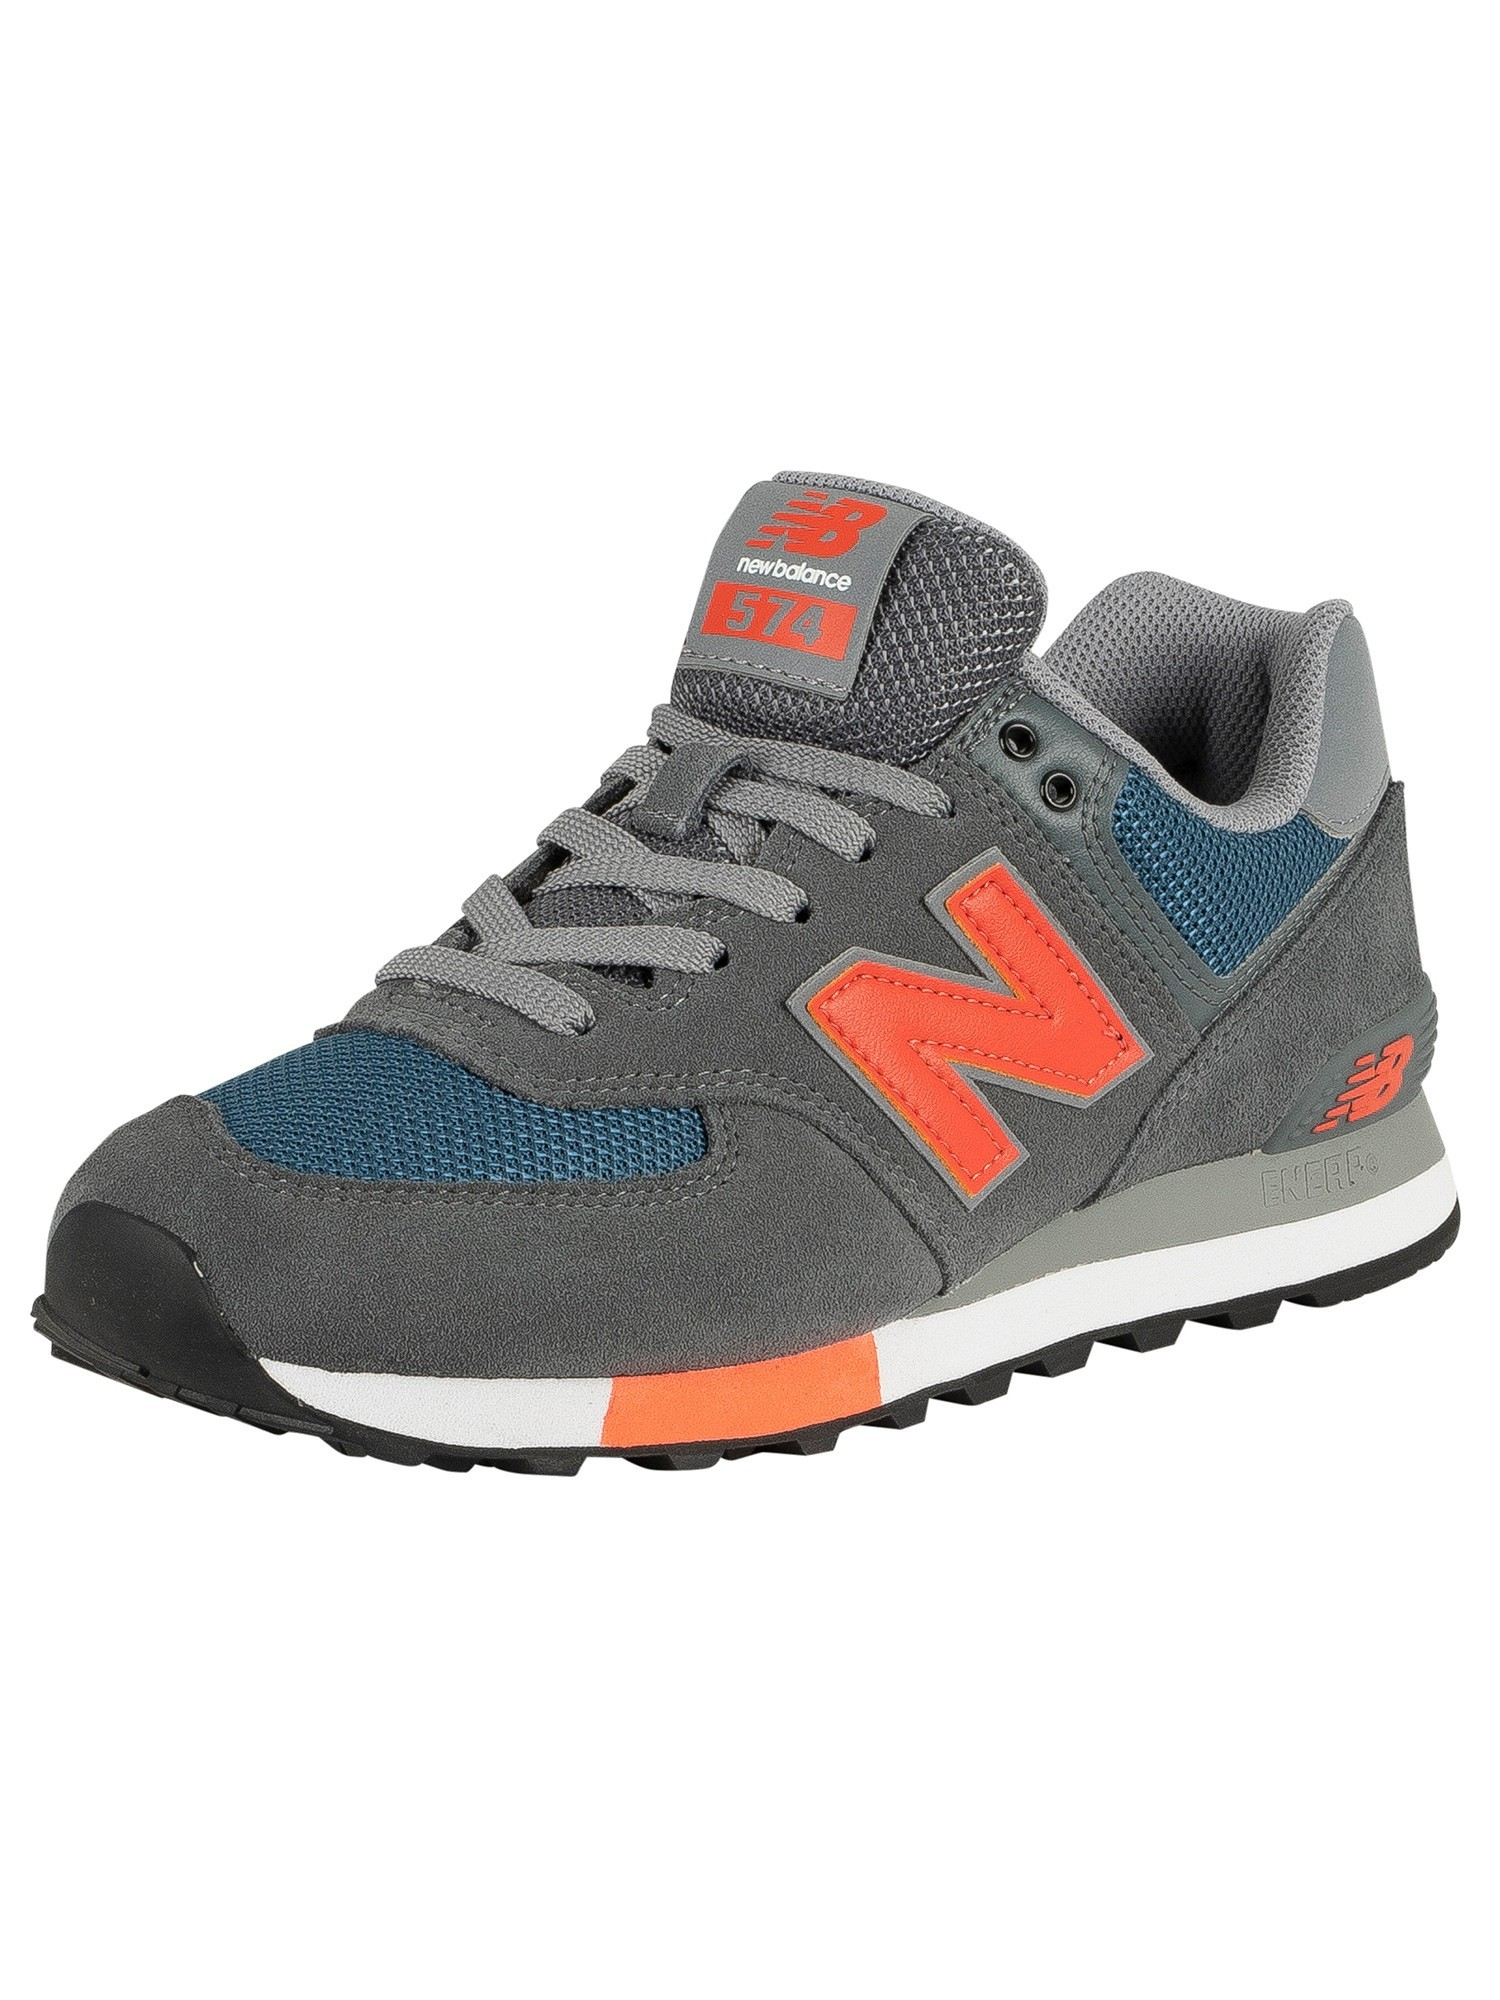 best website 260d3 c6303 New Balance 574 Suede Trainers - Grey/Blue